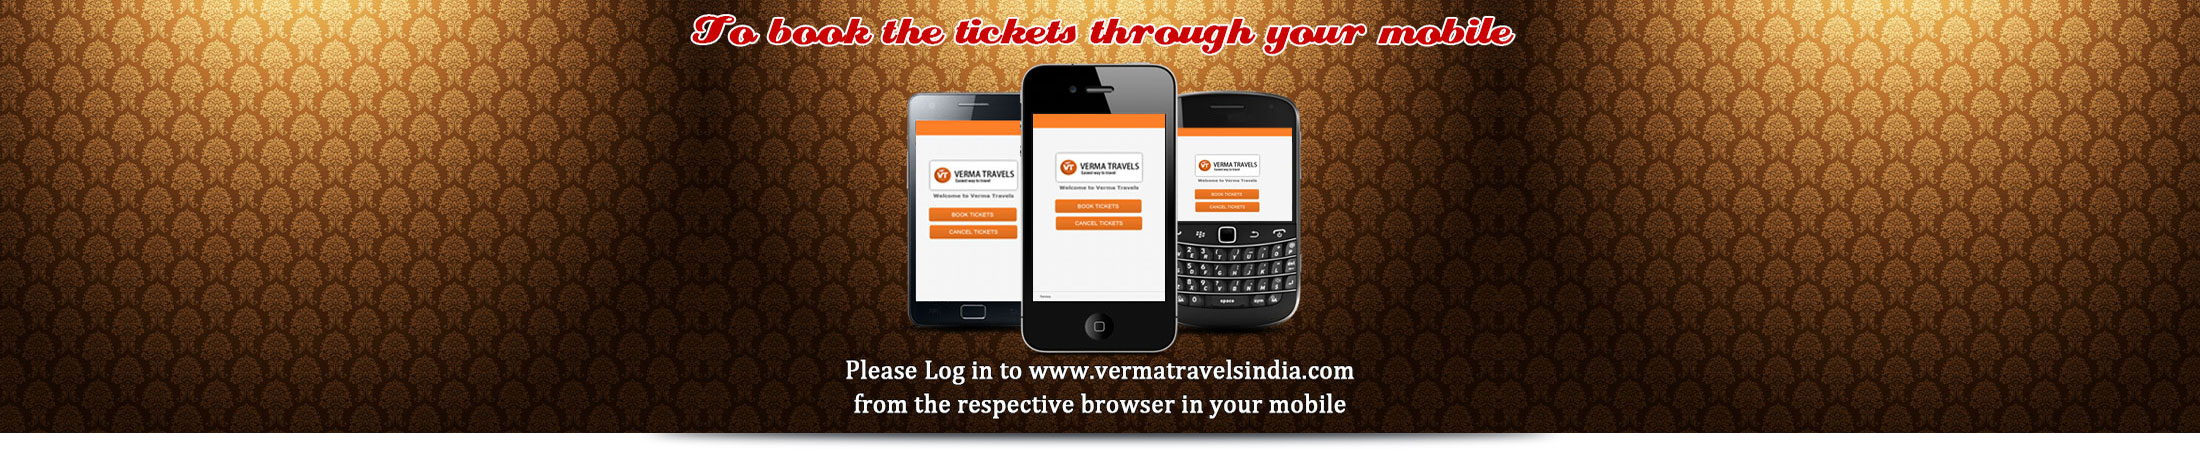 Verma Travels - Book Tickets